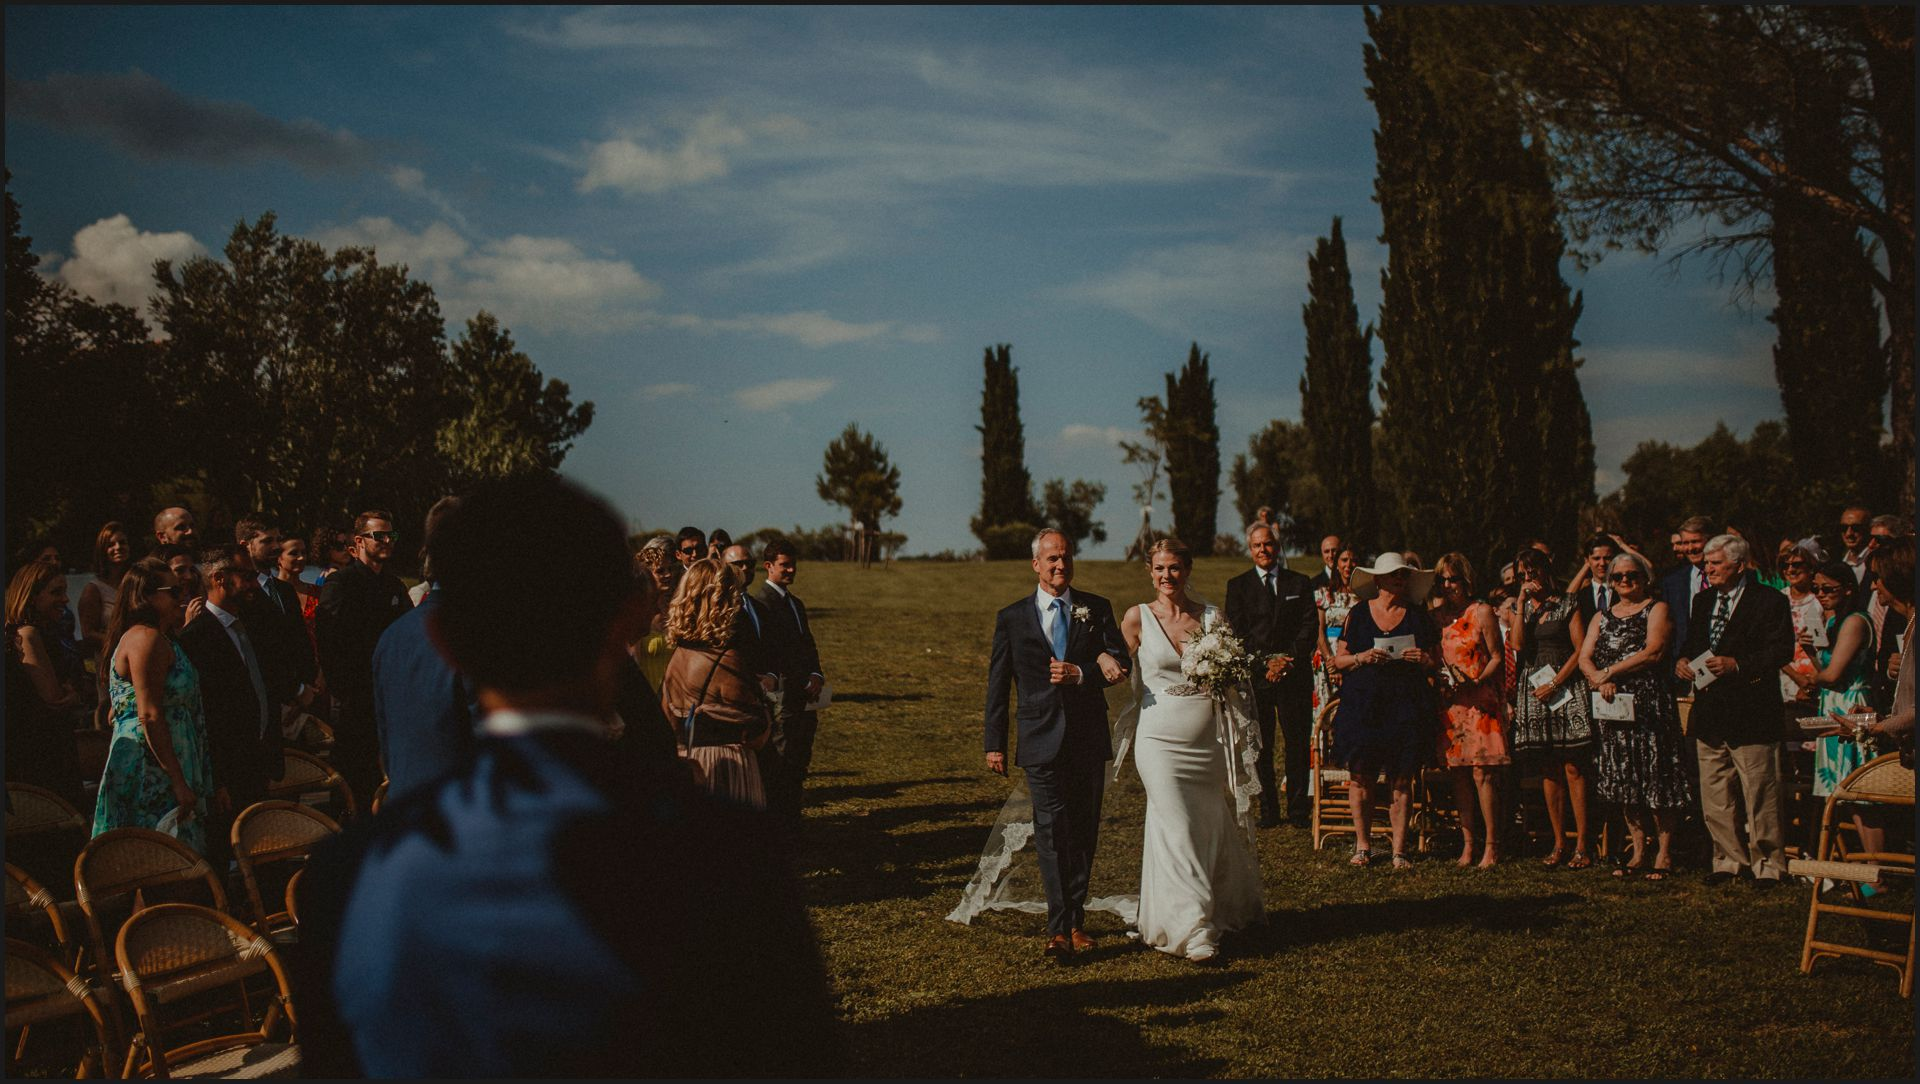 tenuta di canonica, umbria, wedding, ceremony, country, bride, walking the aisle